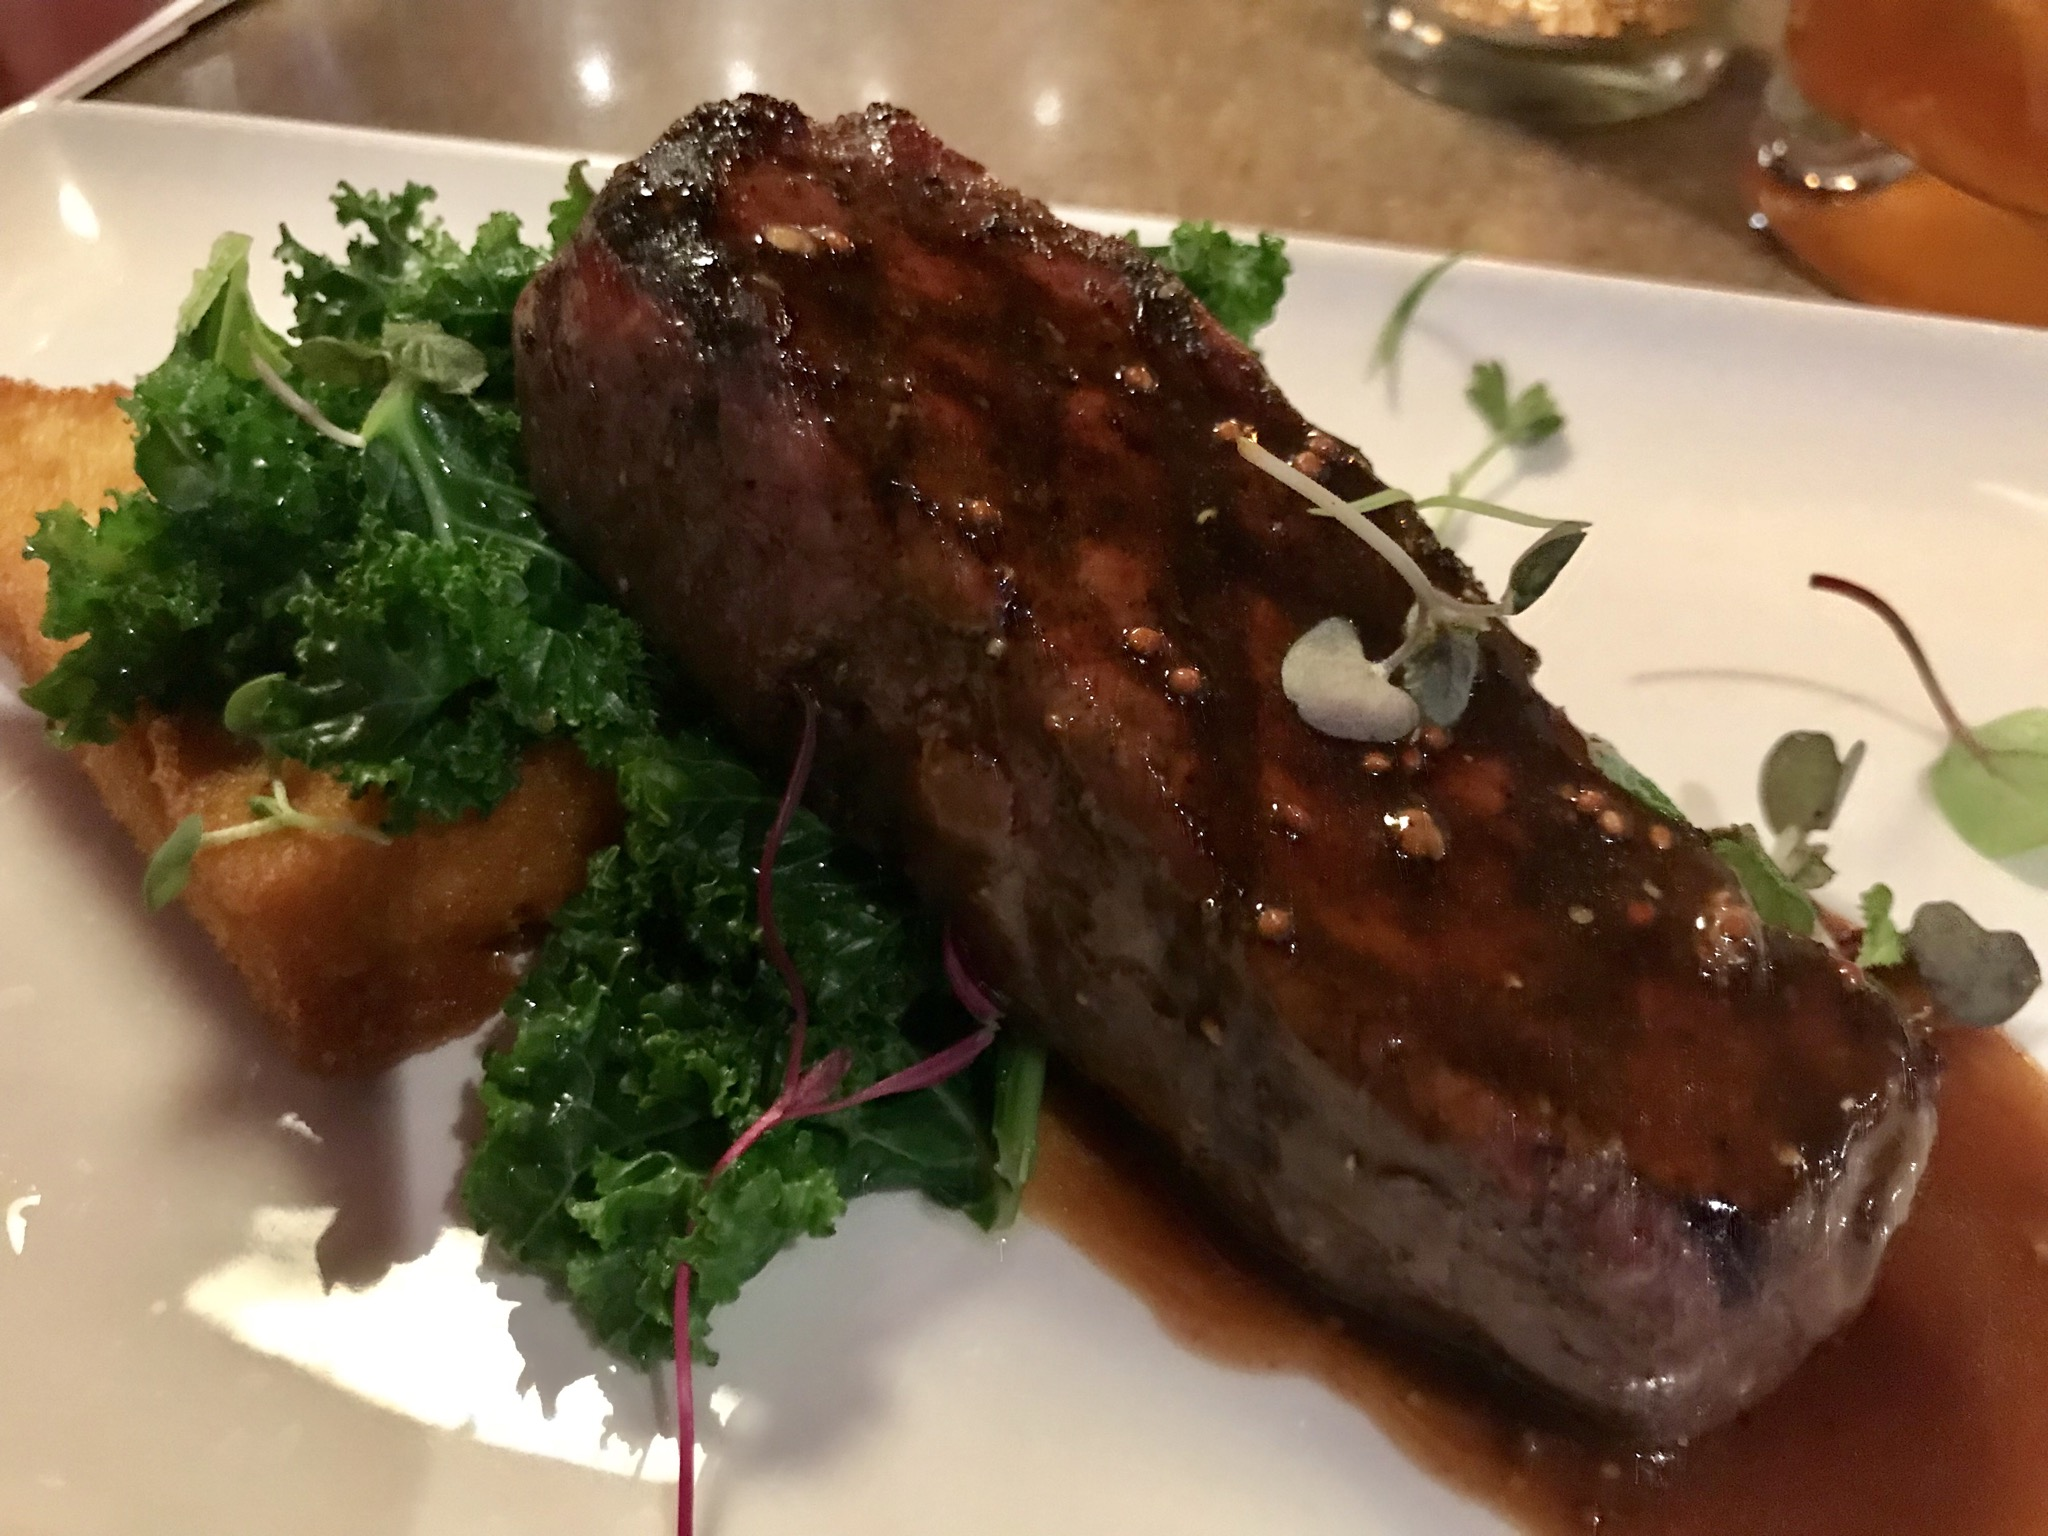 A Bison New York Strip & Delicious Scallops at Tagris - March 30 2018